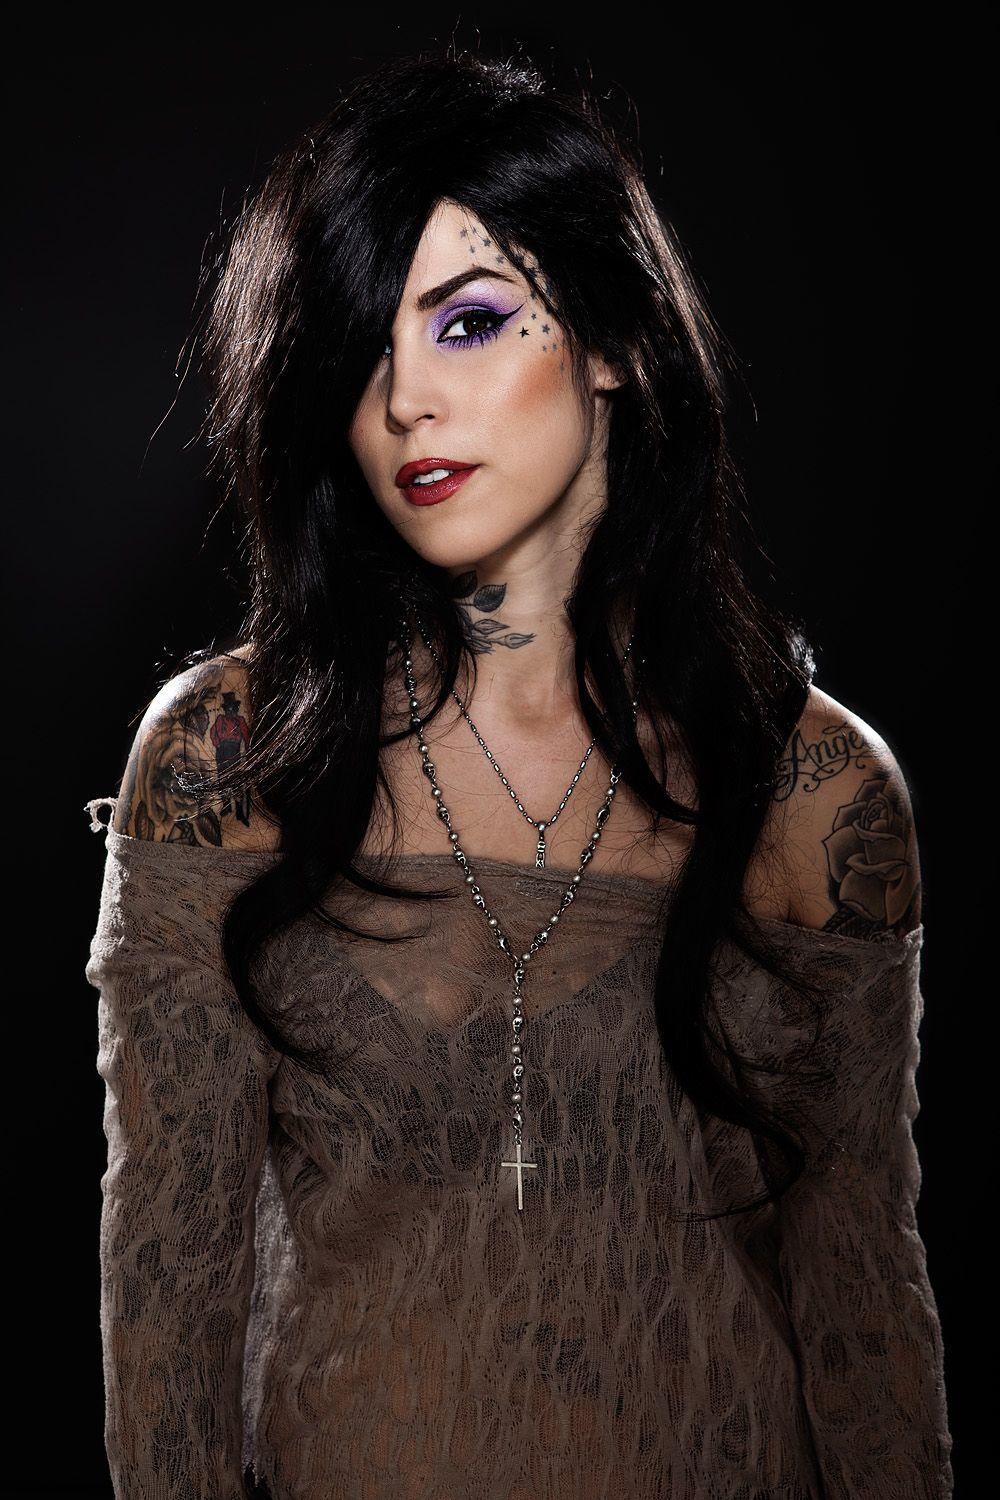 Kat Von D - Hollywood - Actress Wallpapers Download FREE (Page - 2 ...